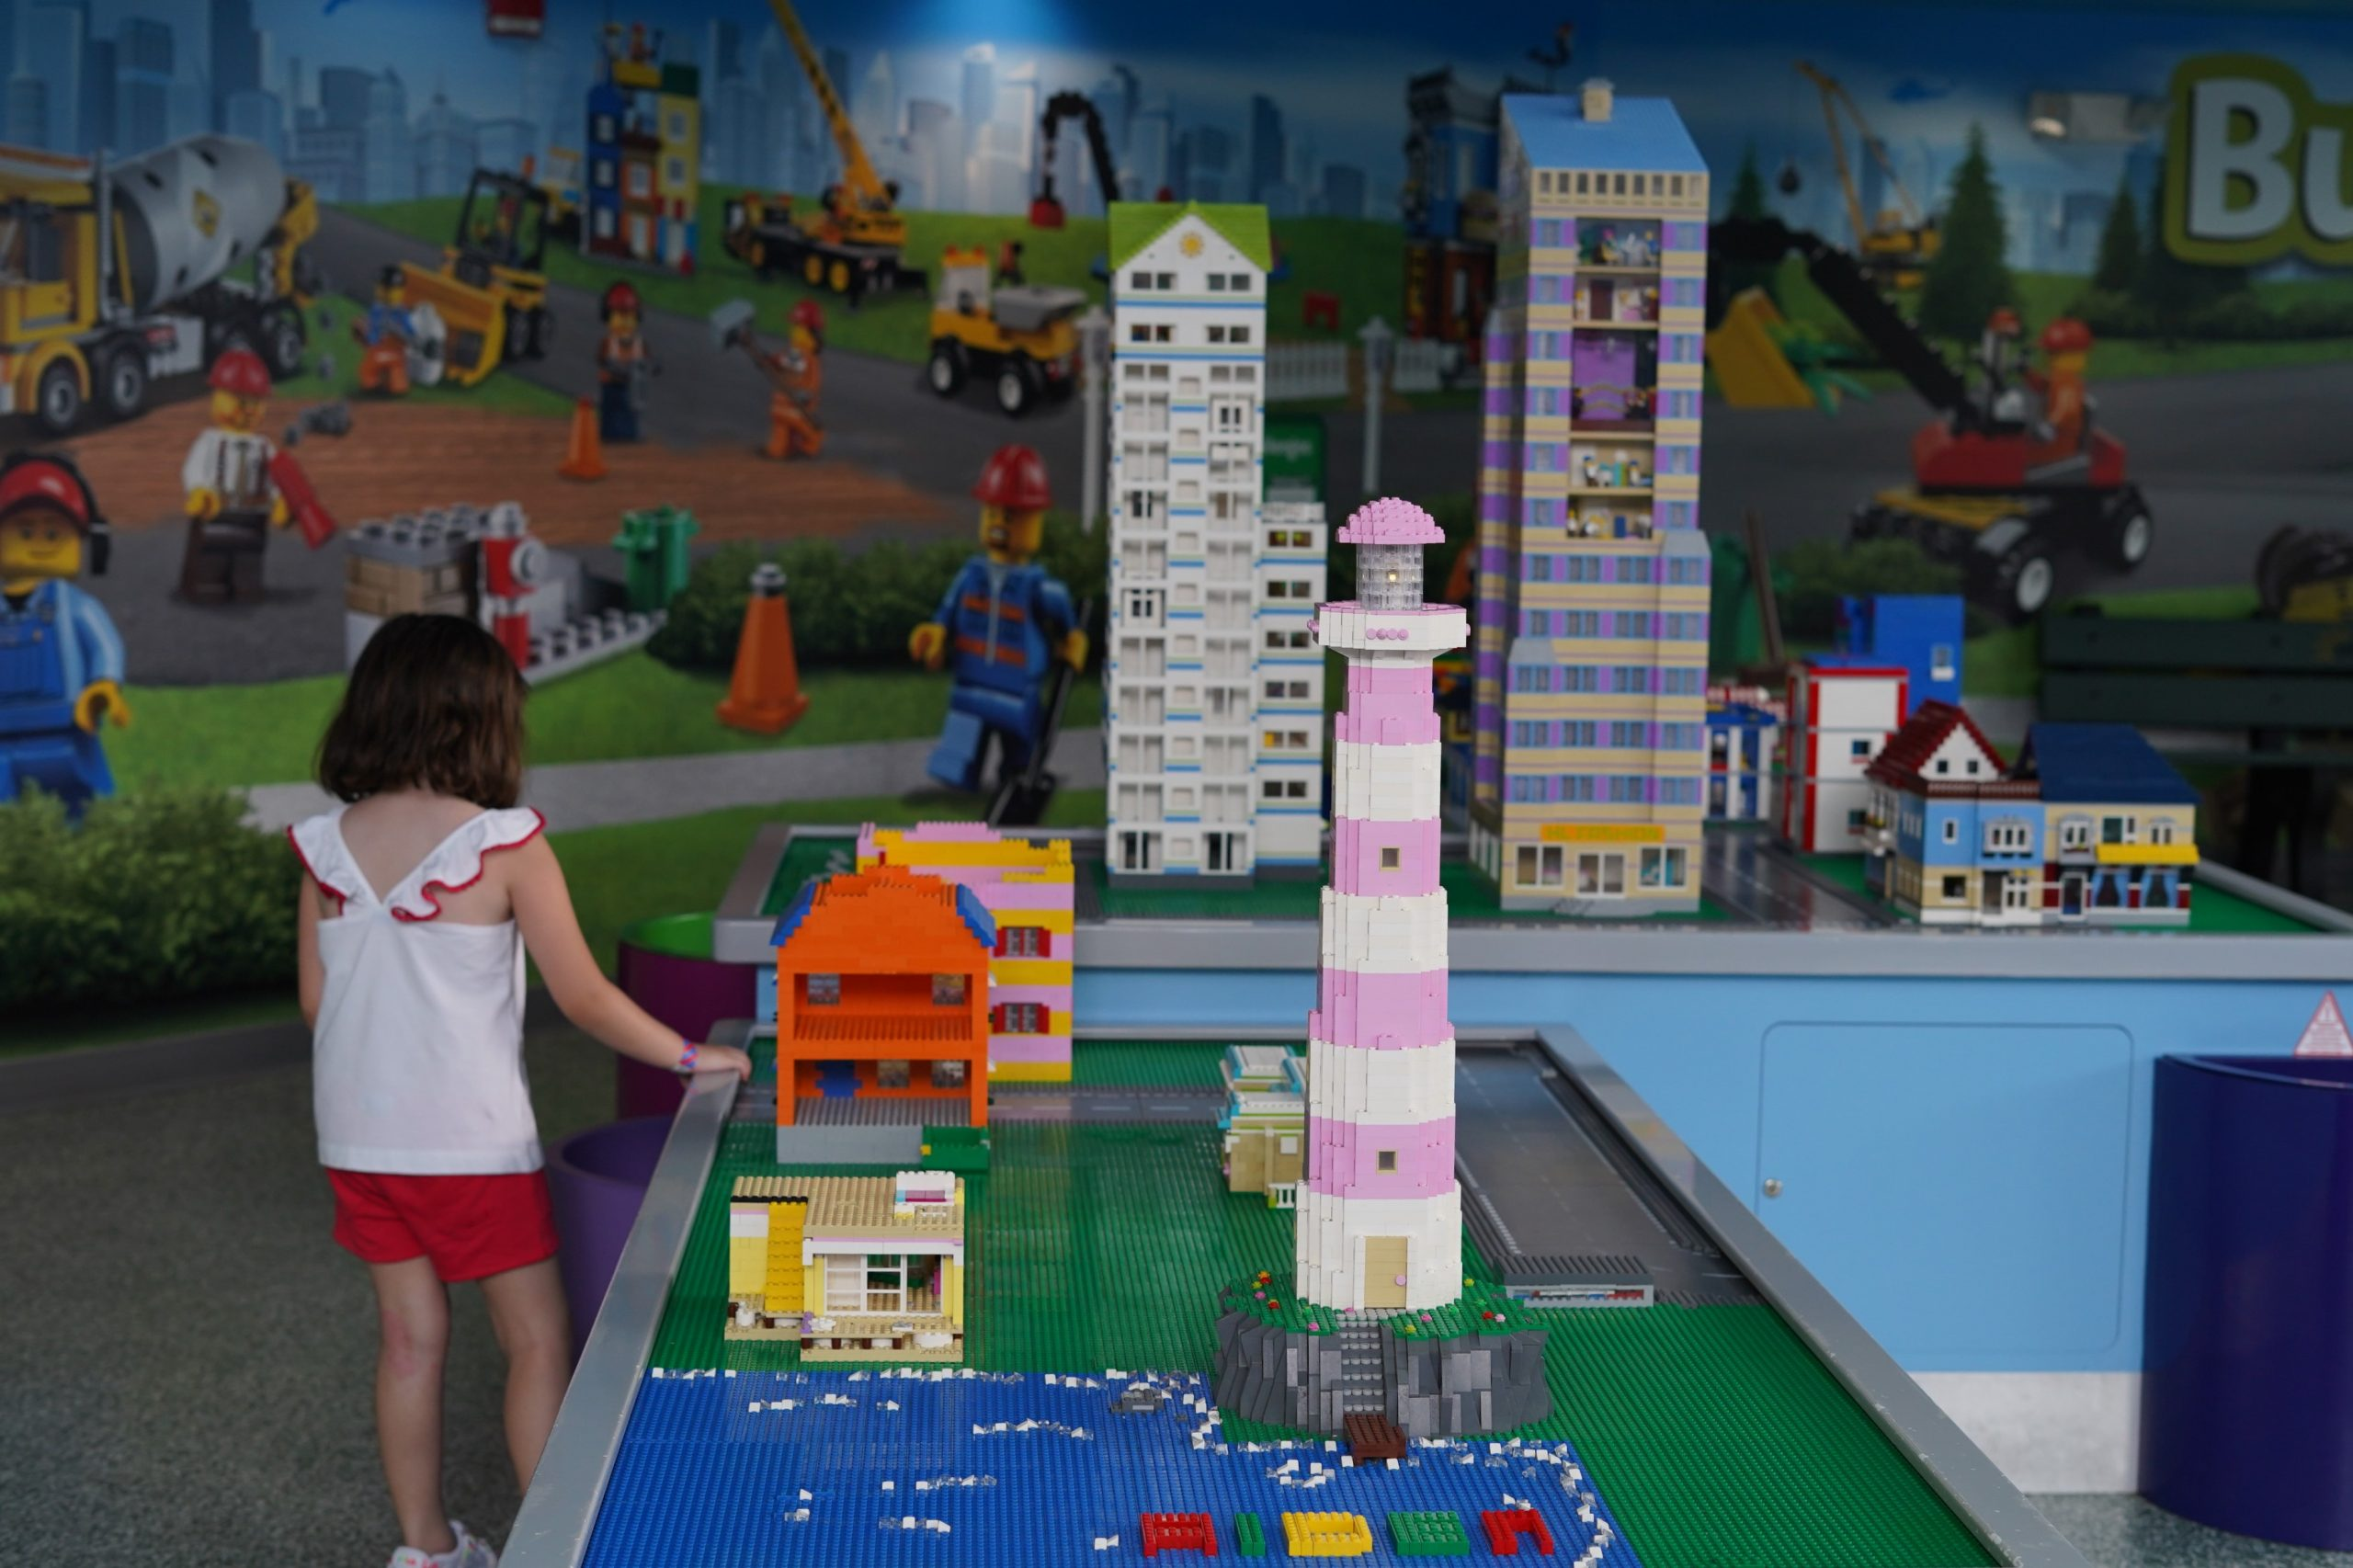 Little girl looking at lego displays in Imagination Zone in LEGOLAND.  | Guide to LEGOLAND Florida